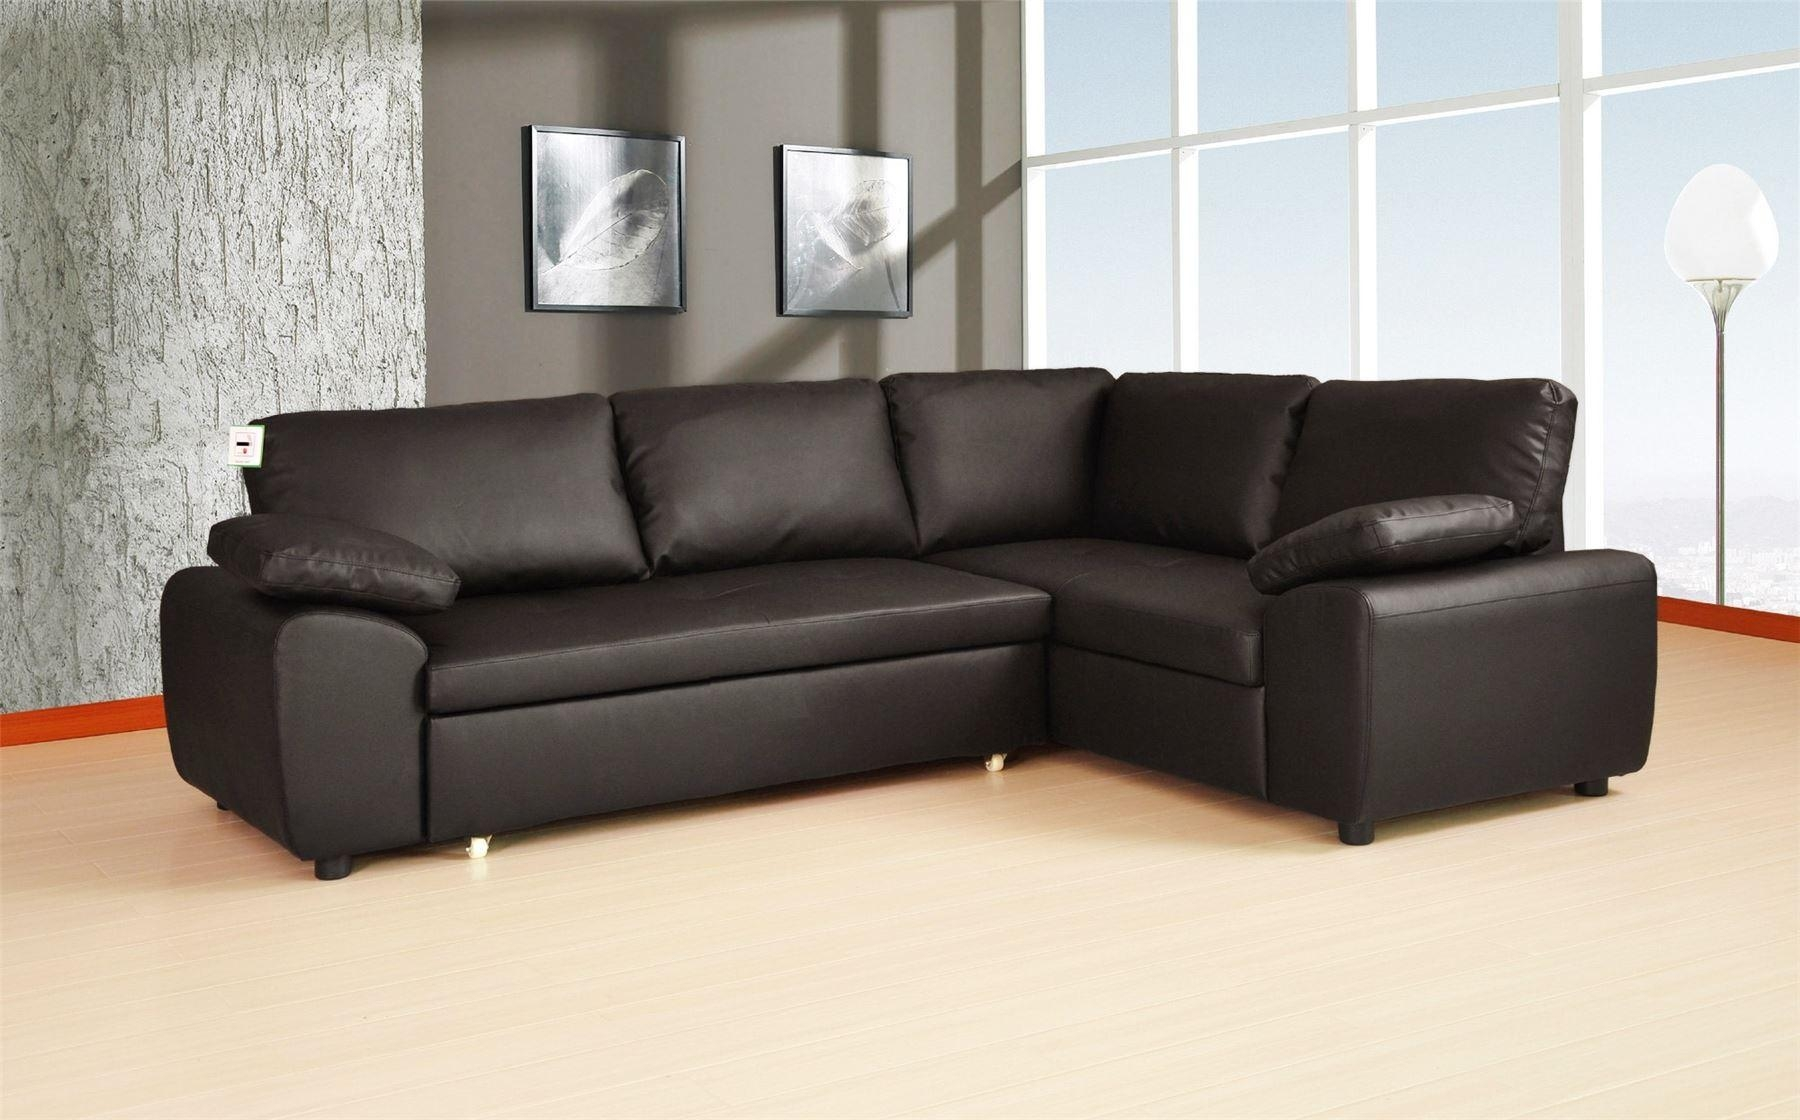 Corner Sofa Black Leather Dadka Modern Home Decor And E Saving Within Small Brown Leather Corner Sofas (Image 6 of 21)